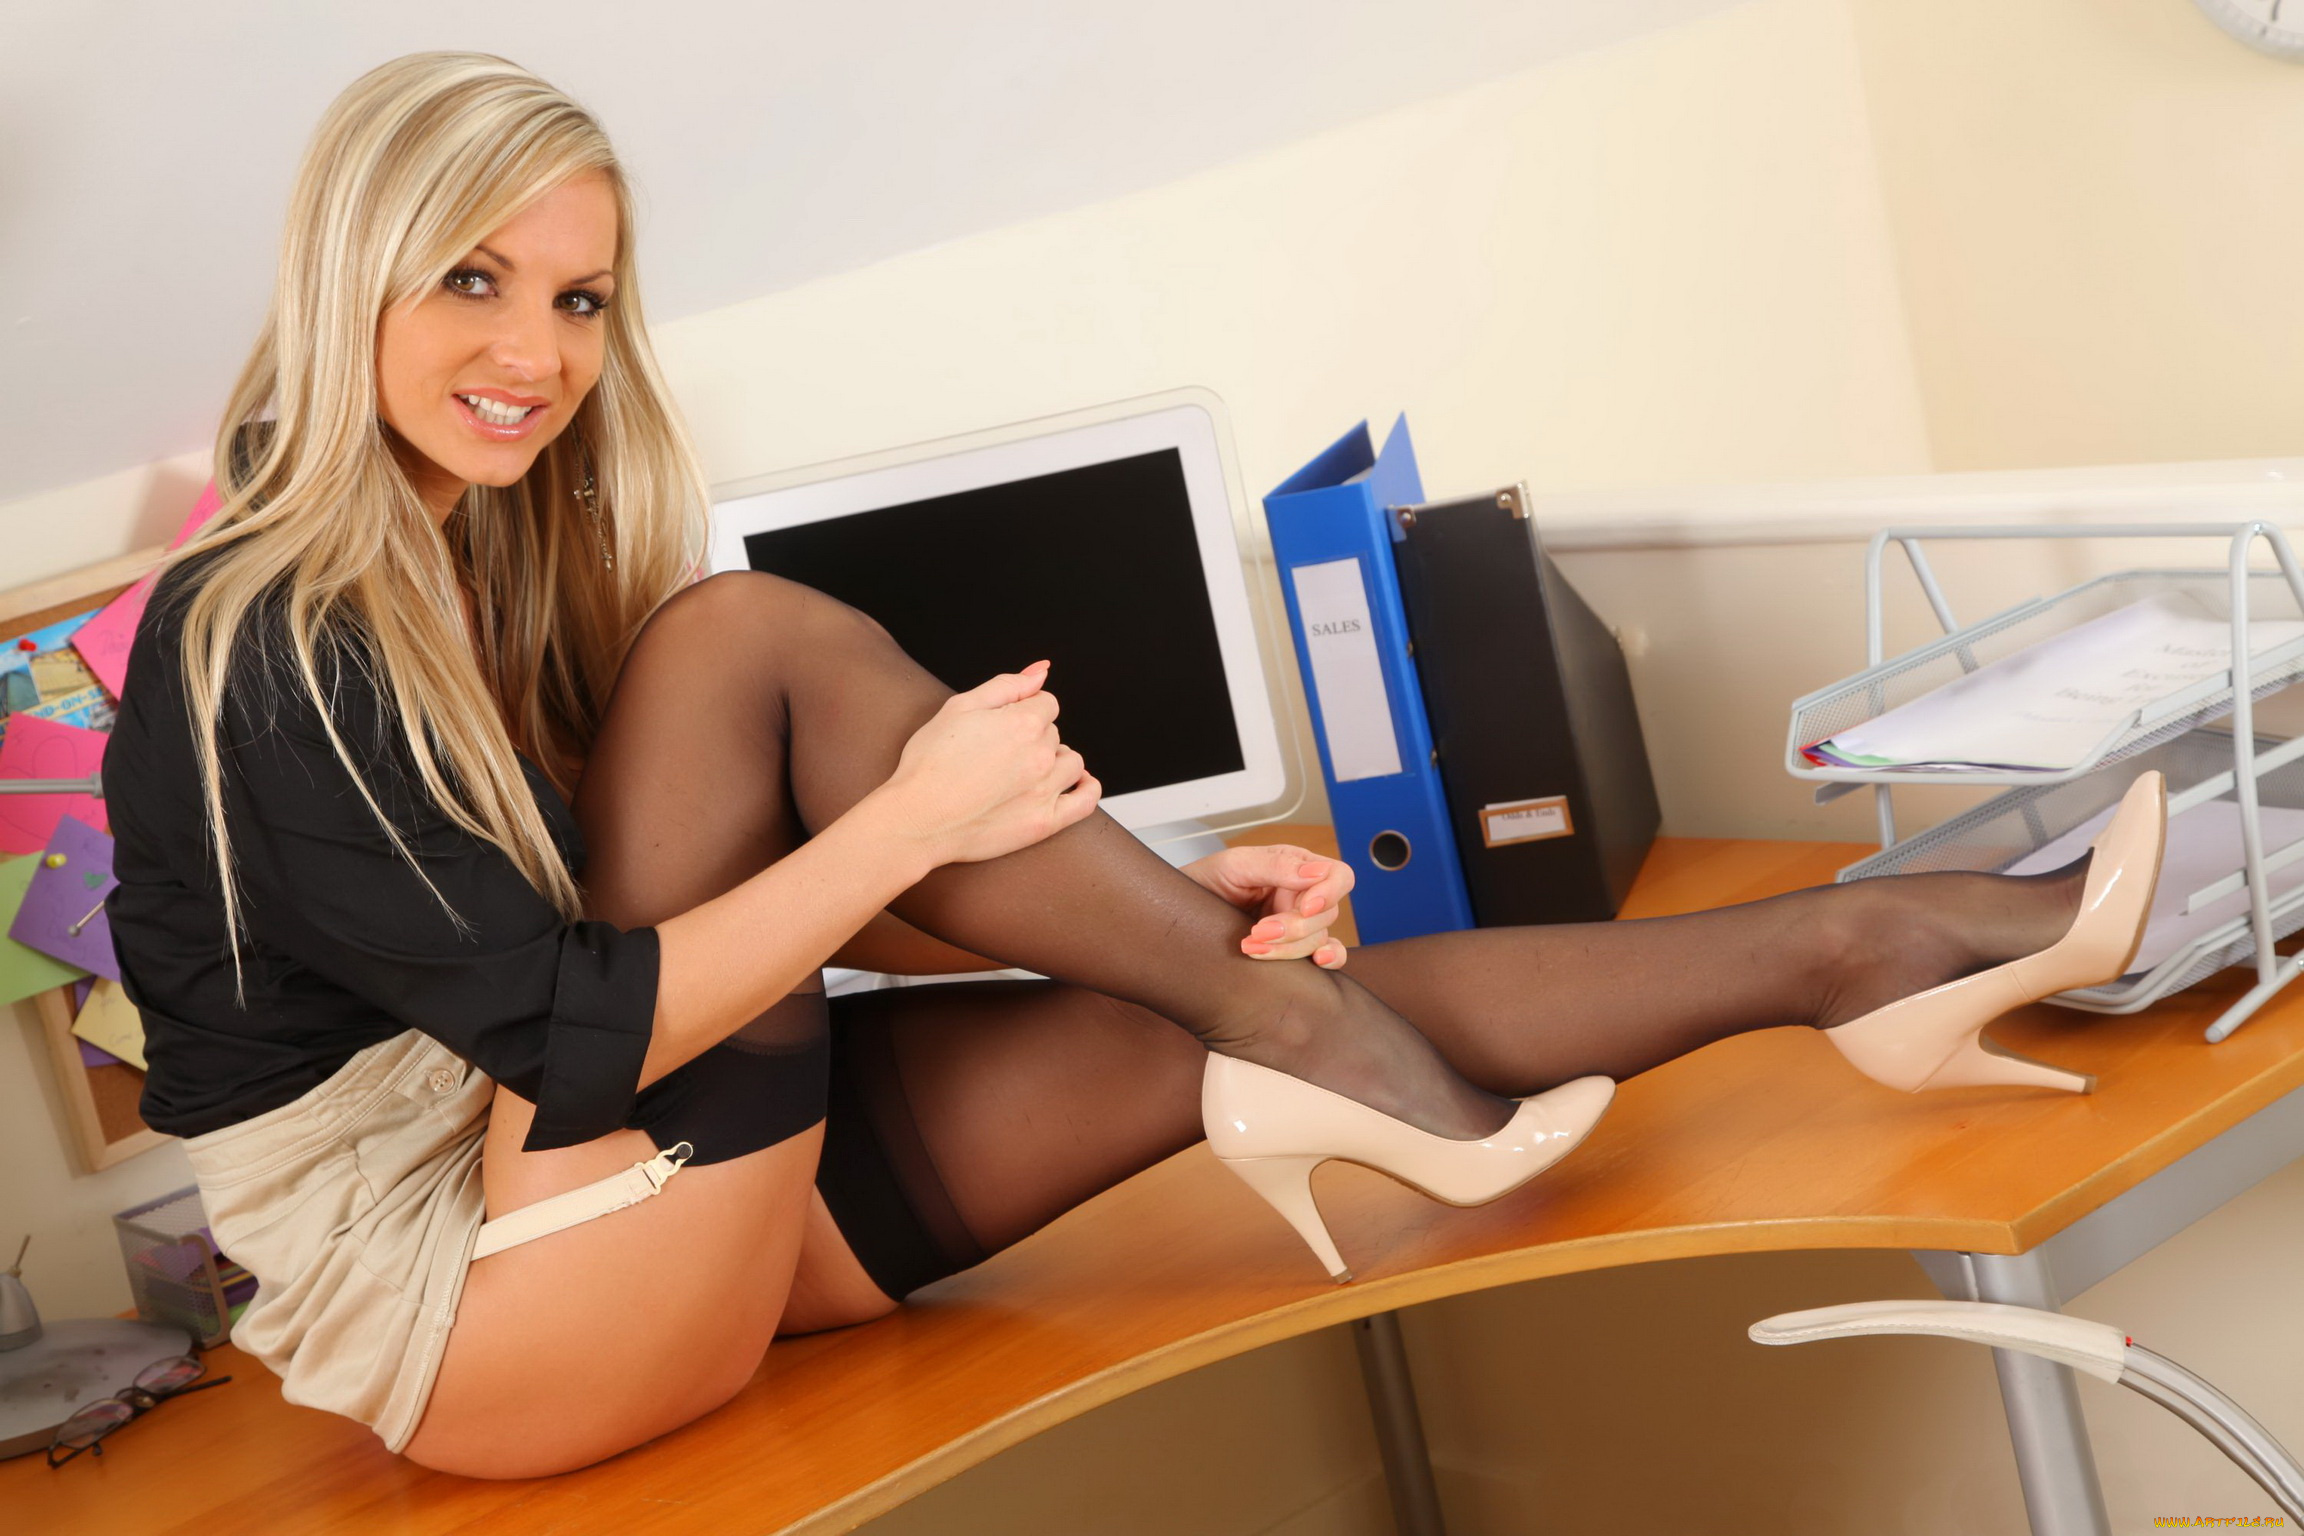 boys-hot-girl-in-the-office-big-boobs